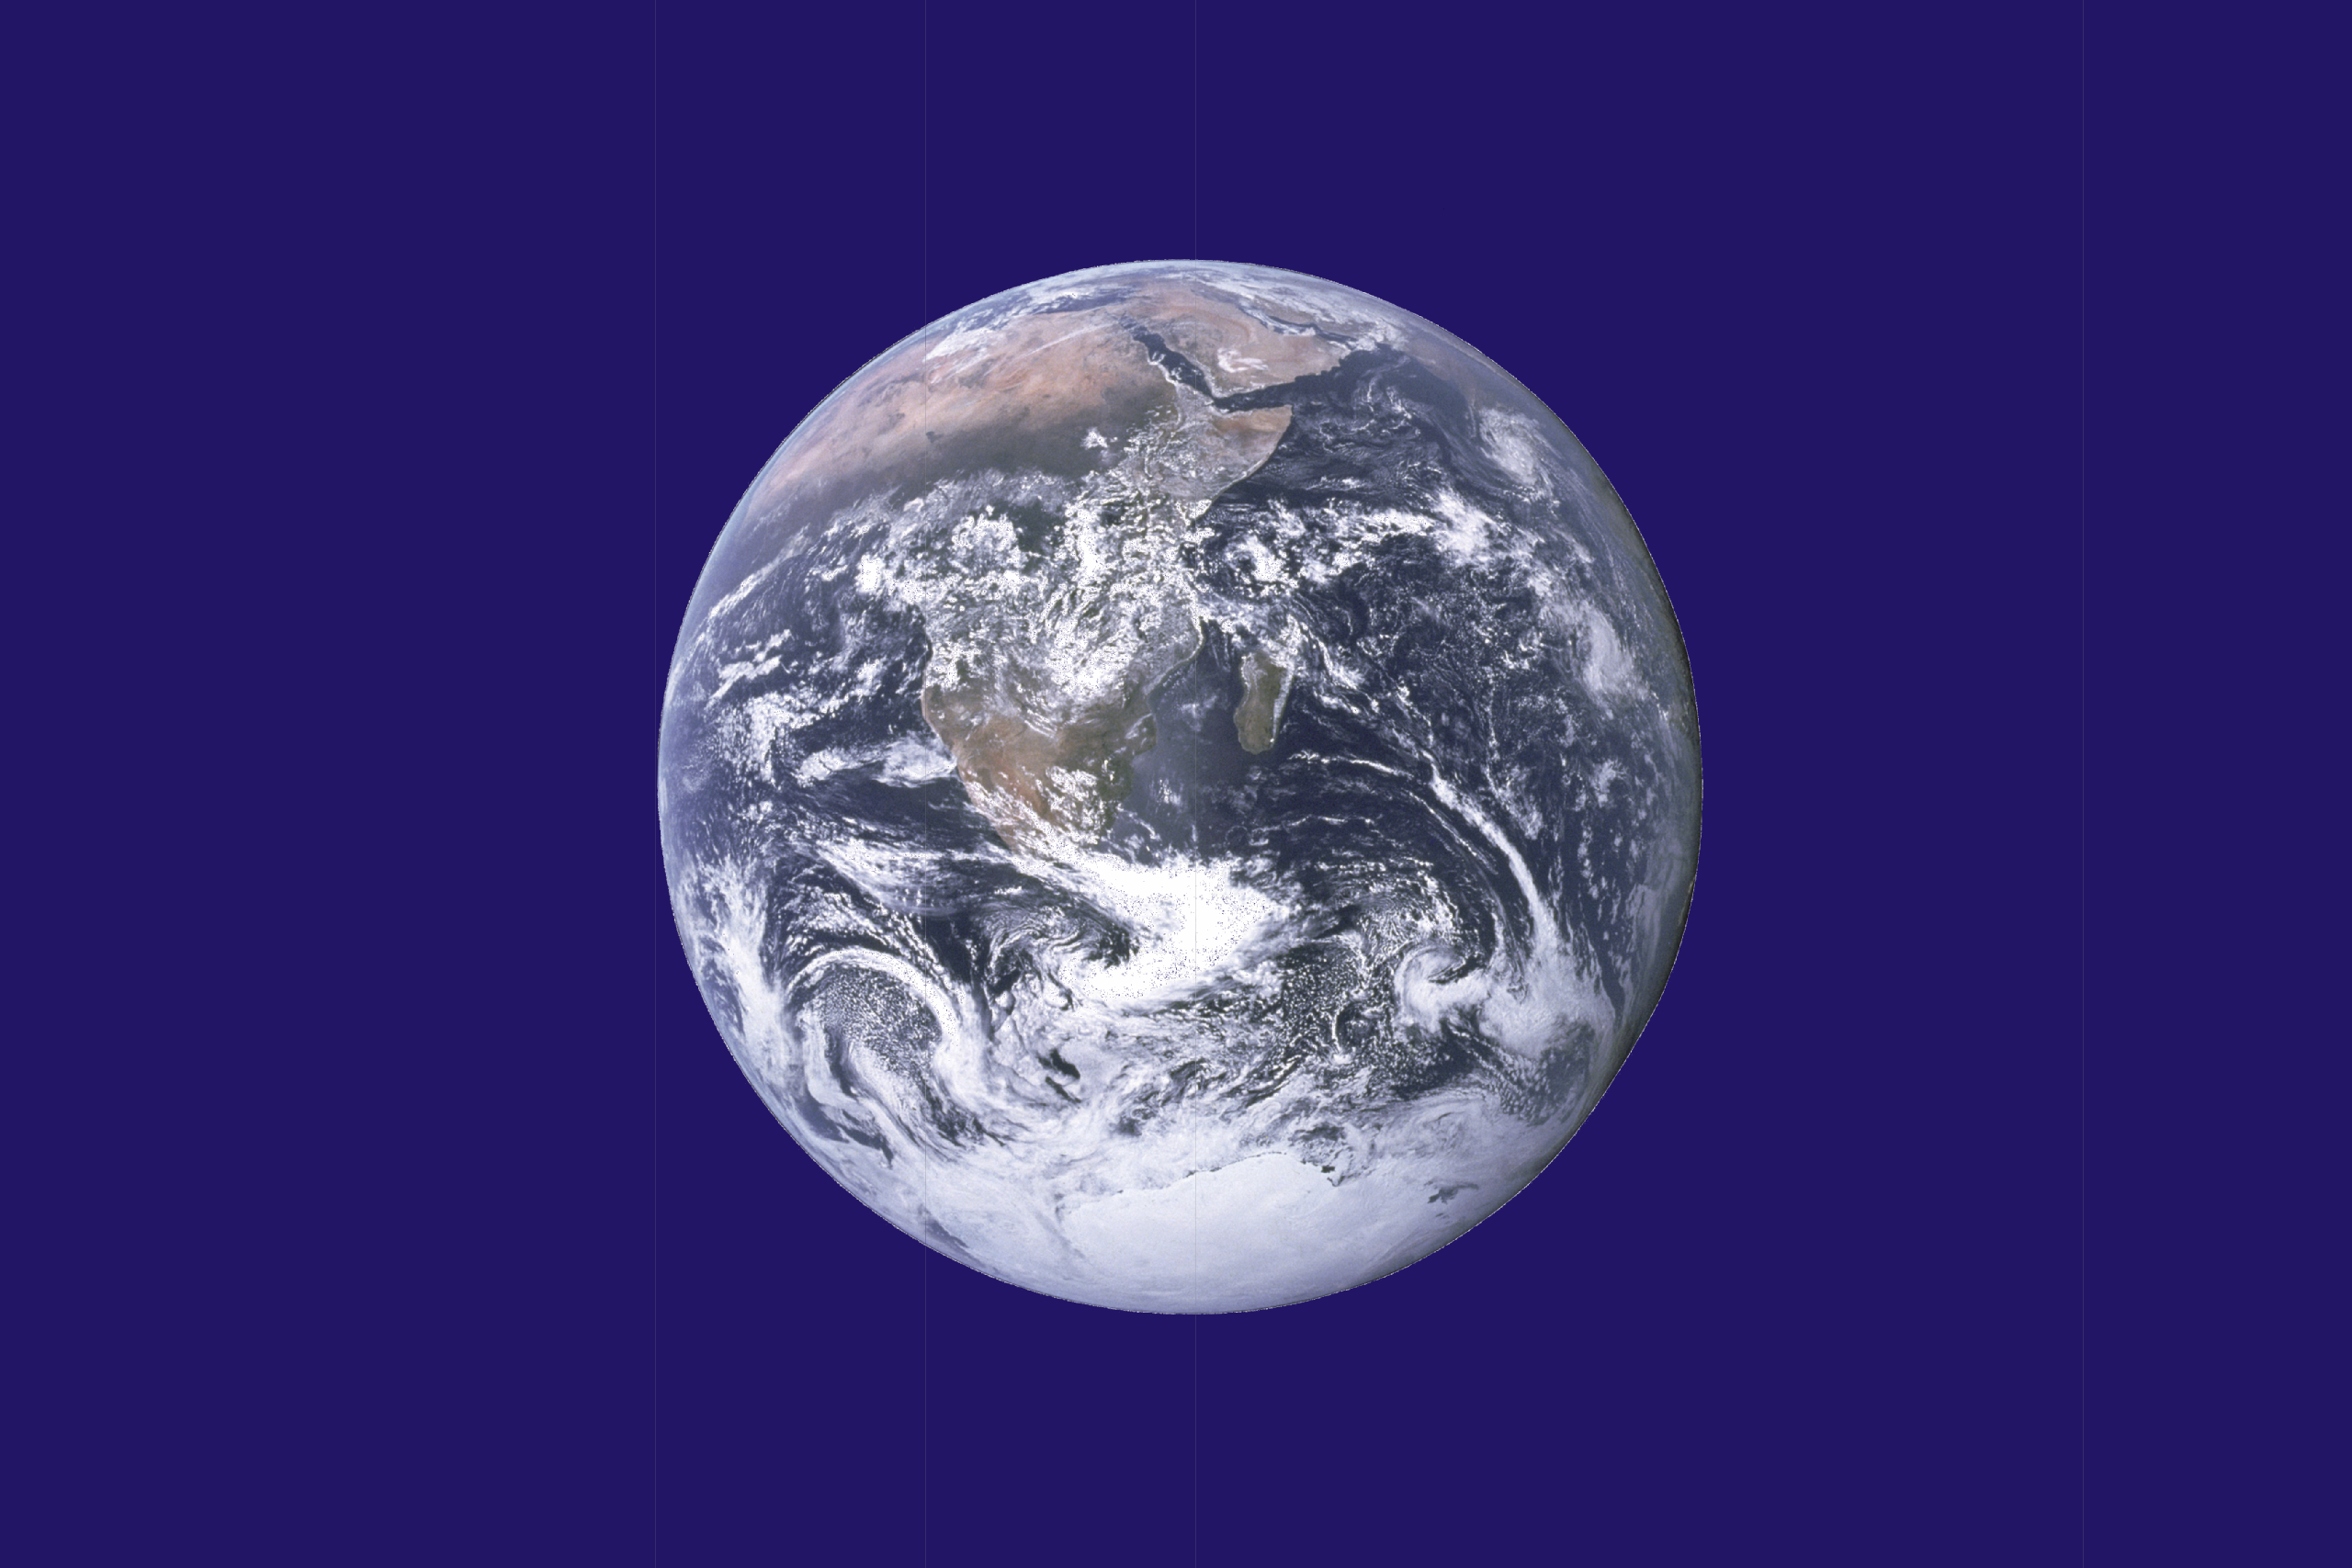 Earth Day Flag by John McConnell, NASA, and SiBr4 (Public Domain)